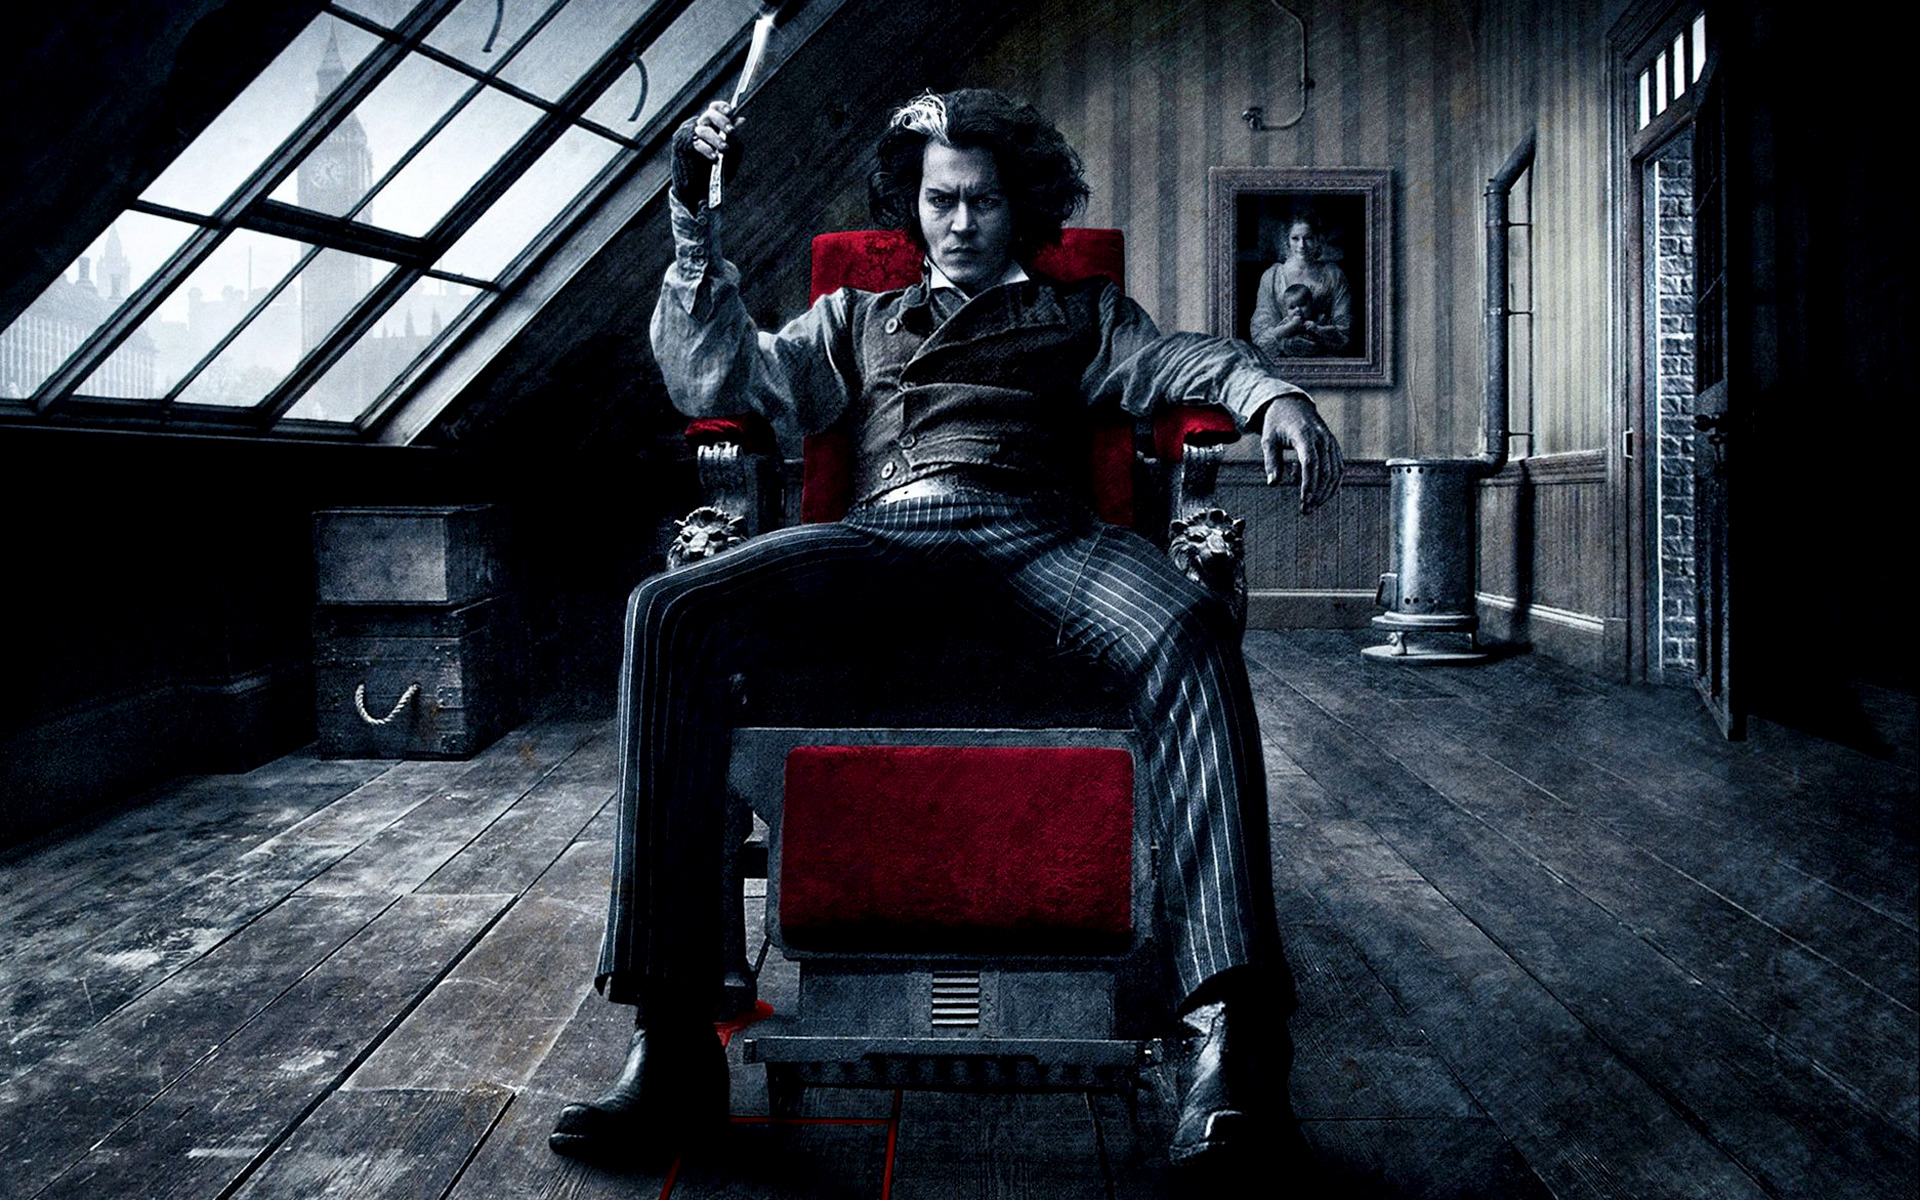 Razor sweeney todd johnny HD Wallpaper